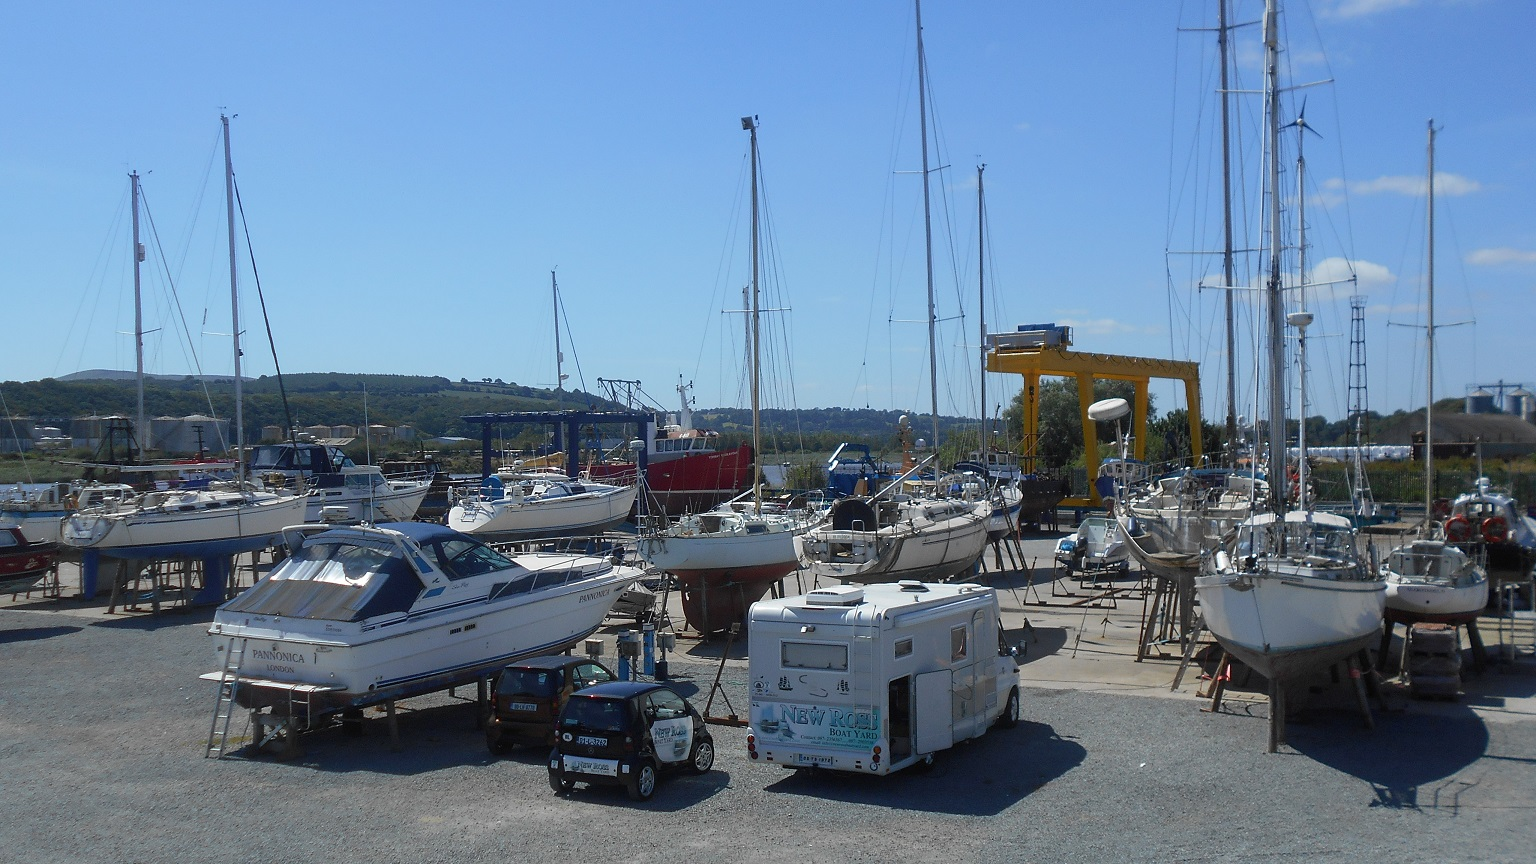 A Yard Manager is sought for New Ross Boatyard